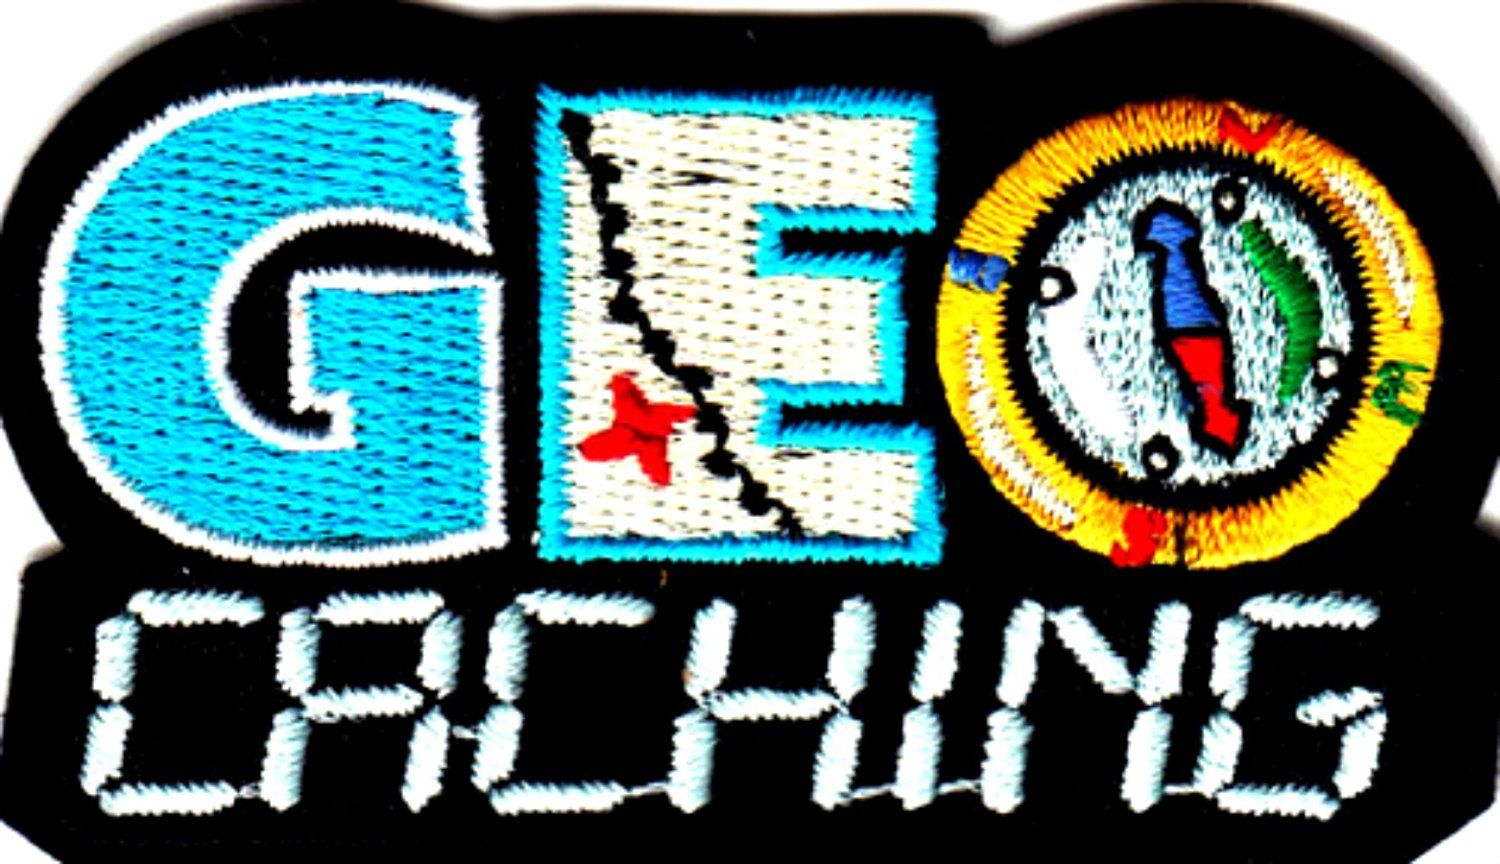 """Amazon.com: [Single Count] Custom and Unique (2 1/2"""" by 1 1/2"""" Inches) Sunny Day Outdoor Activities """"Geo Caching"""" Iron On Embroidered Applique Patch {Black, White, Blue, and Yellow Colors}"""